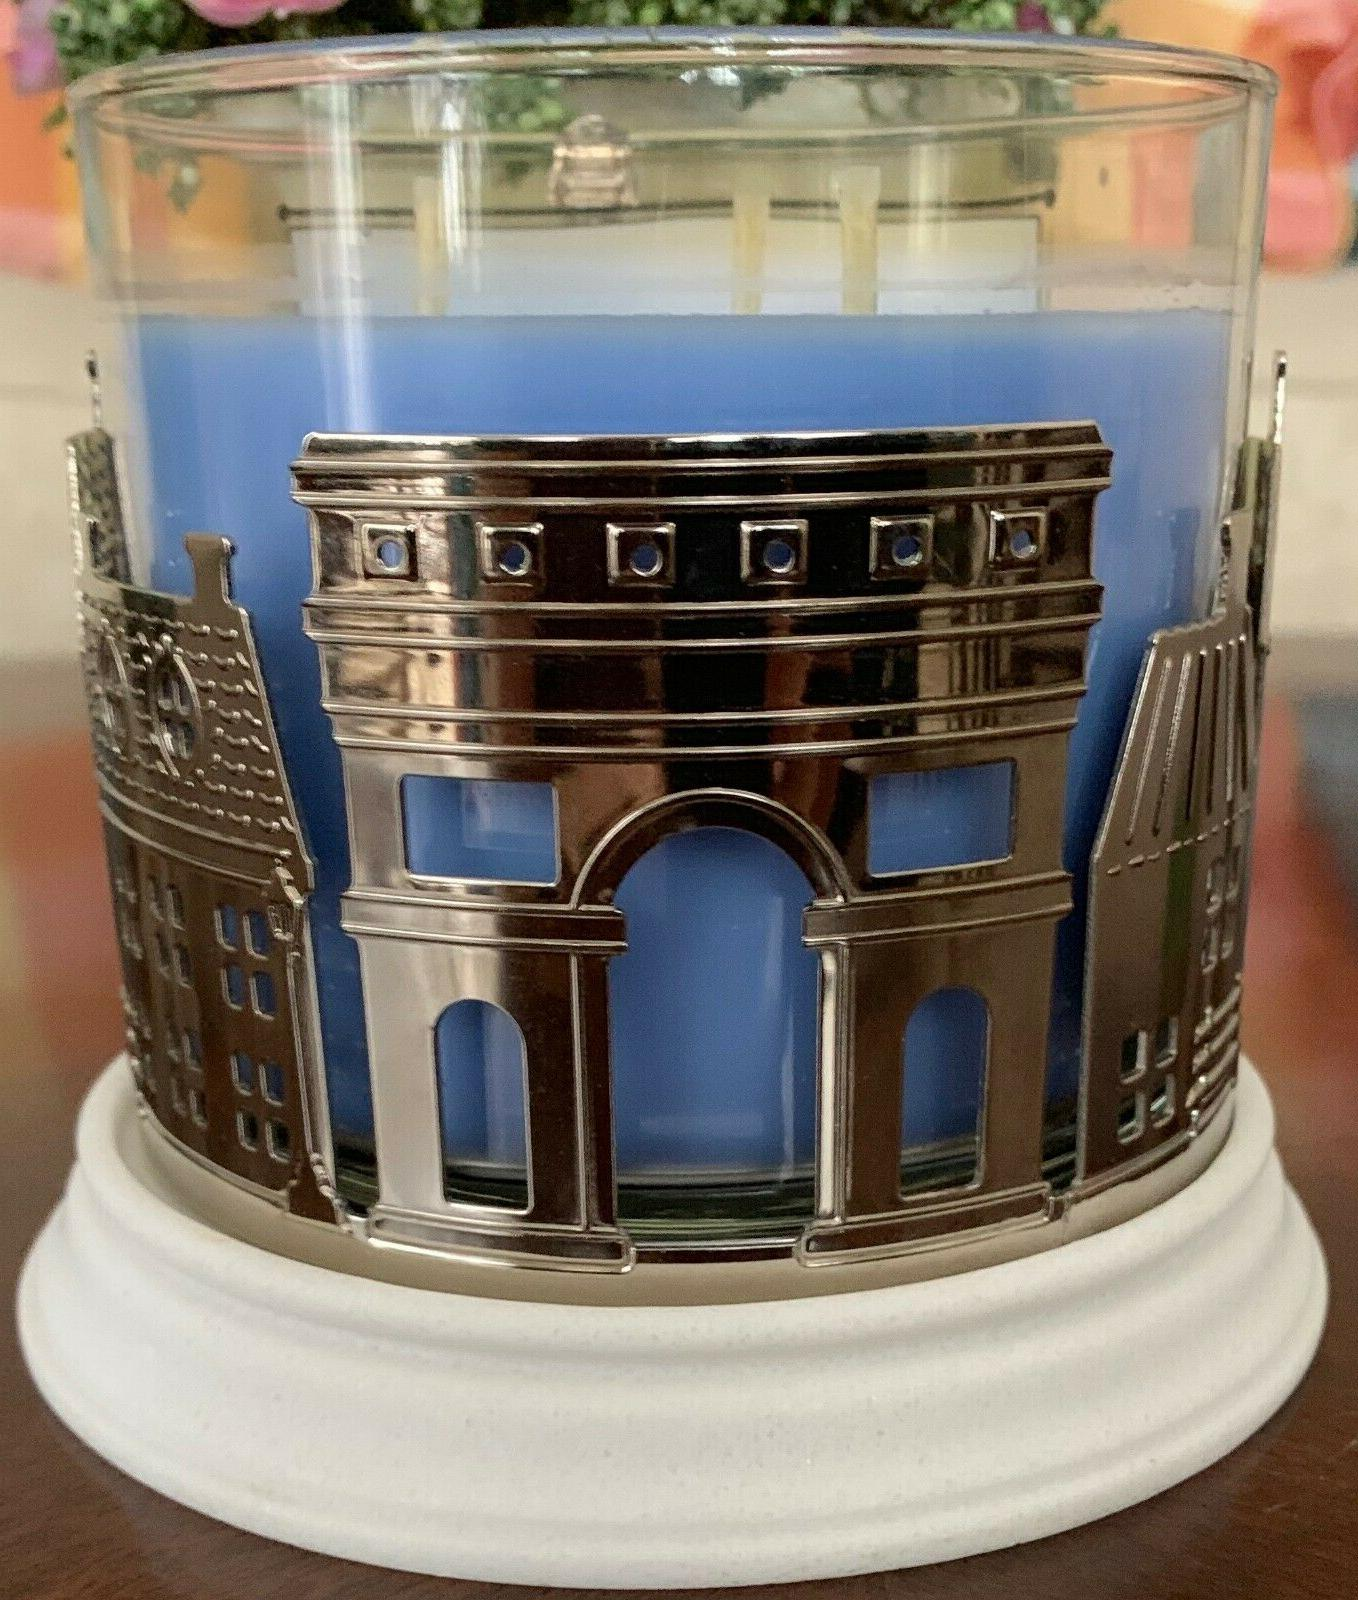 BATH WORKS STREETS OF PARIS WICK HOLDER TOWER